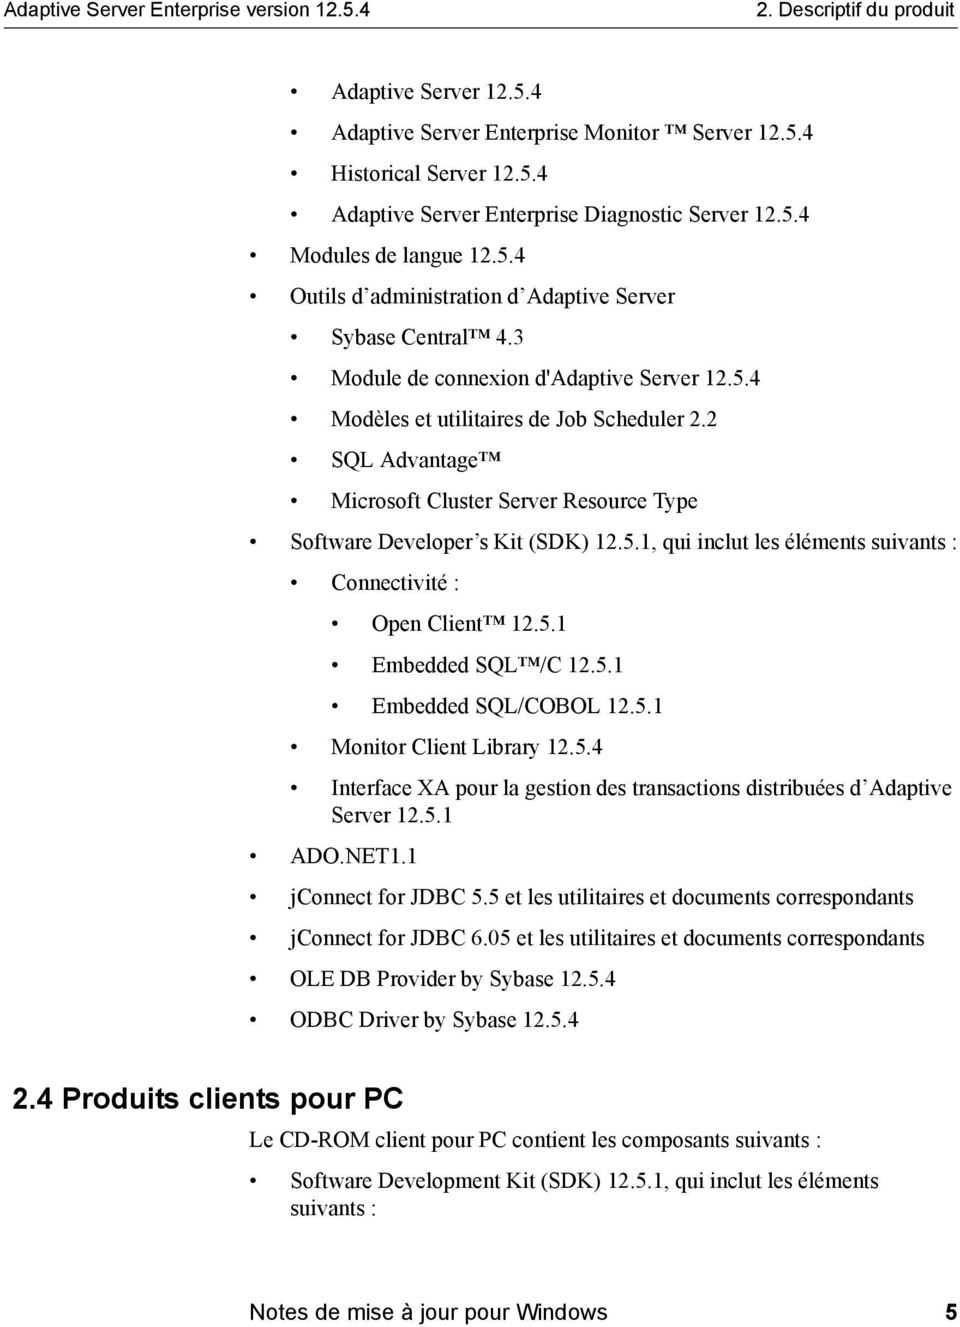 2 SQL Advantage Microsoft Cluster Server Resource Type Software Developer s Kit (SDK) 12.5.1, qui inclut les éléments suivants : Connectivité : Open Client 12.5.1 Embedded SQL /C 12.5.1 Embedded SQL/COBOL 12.